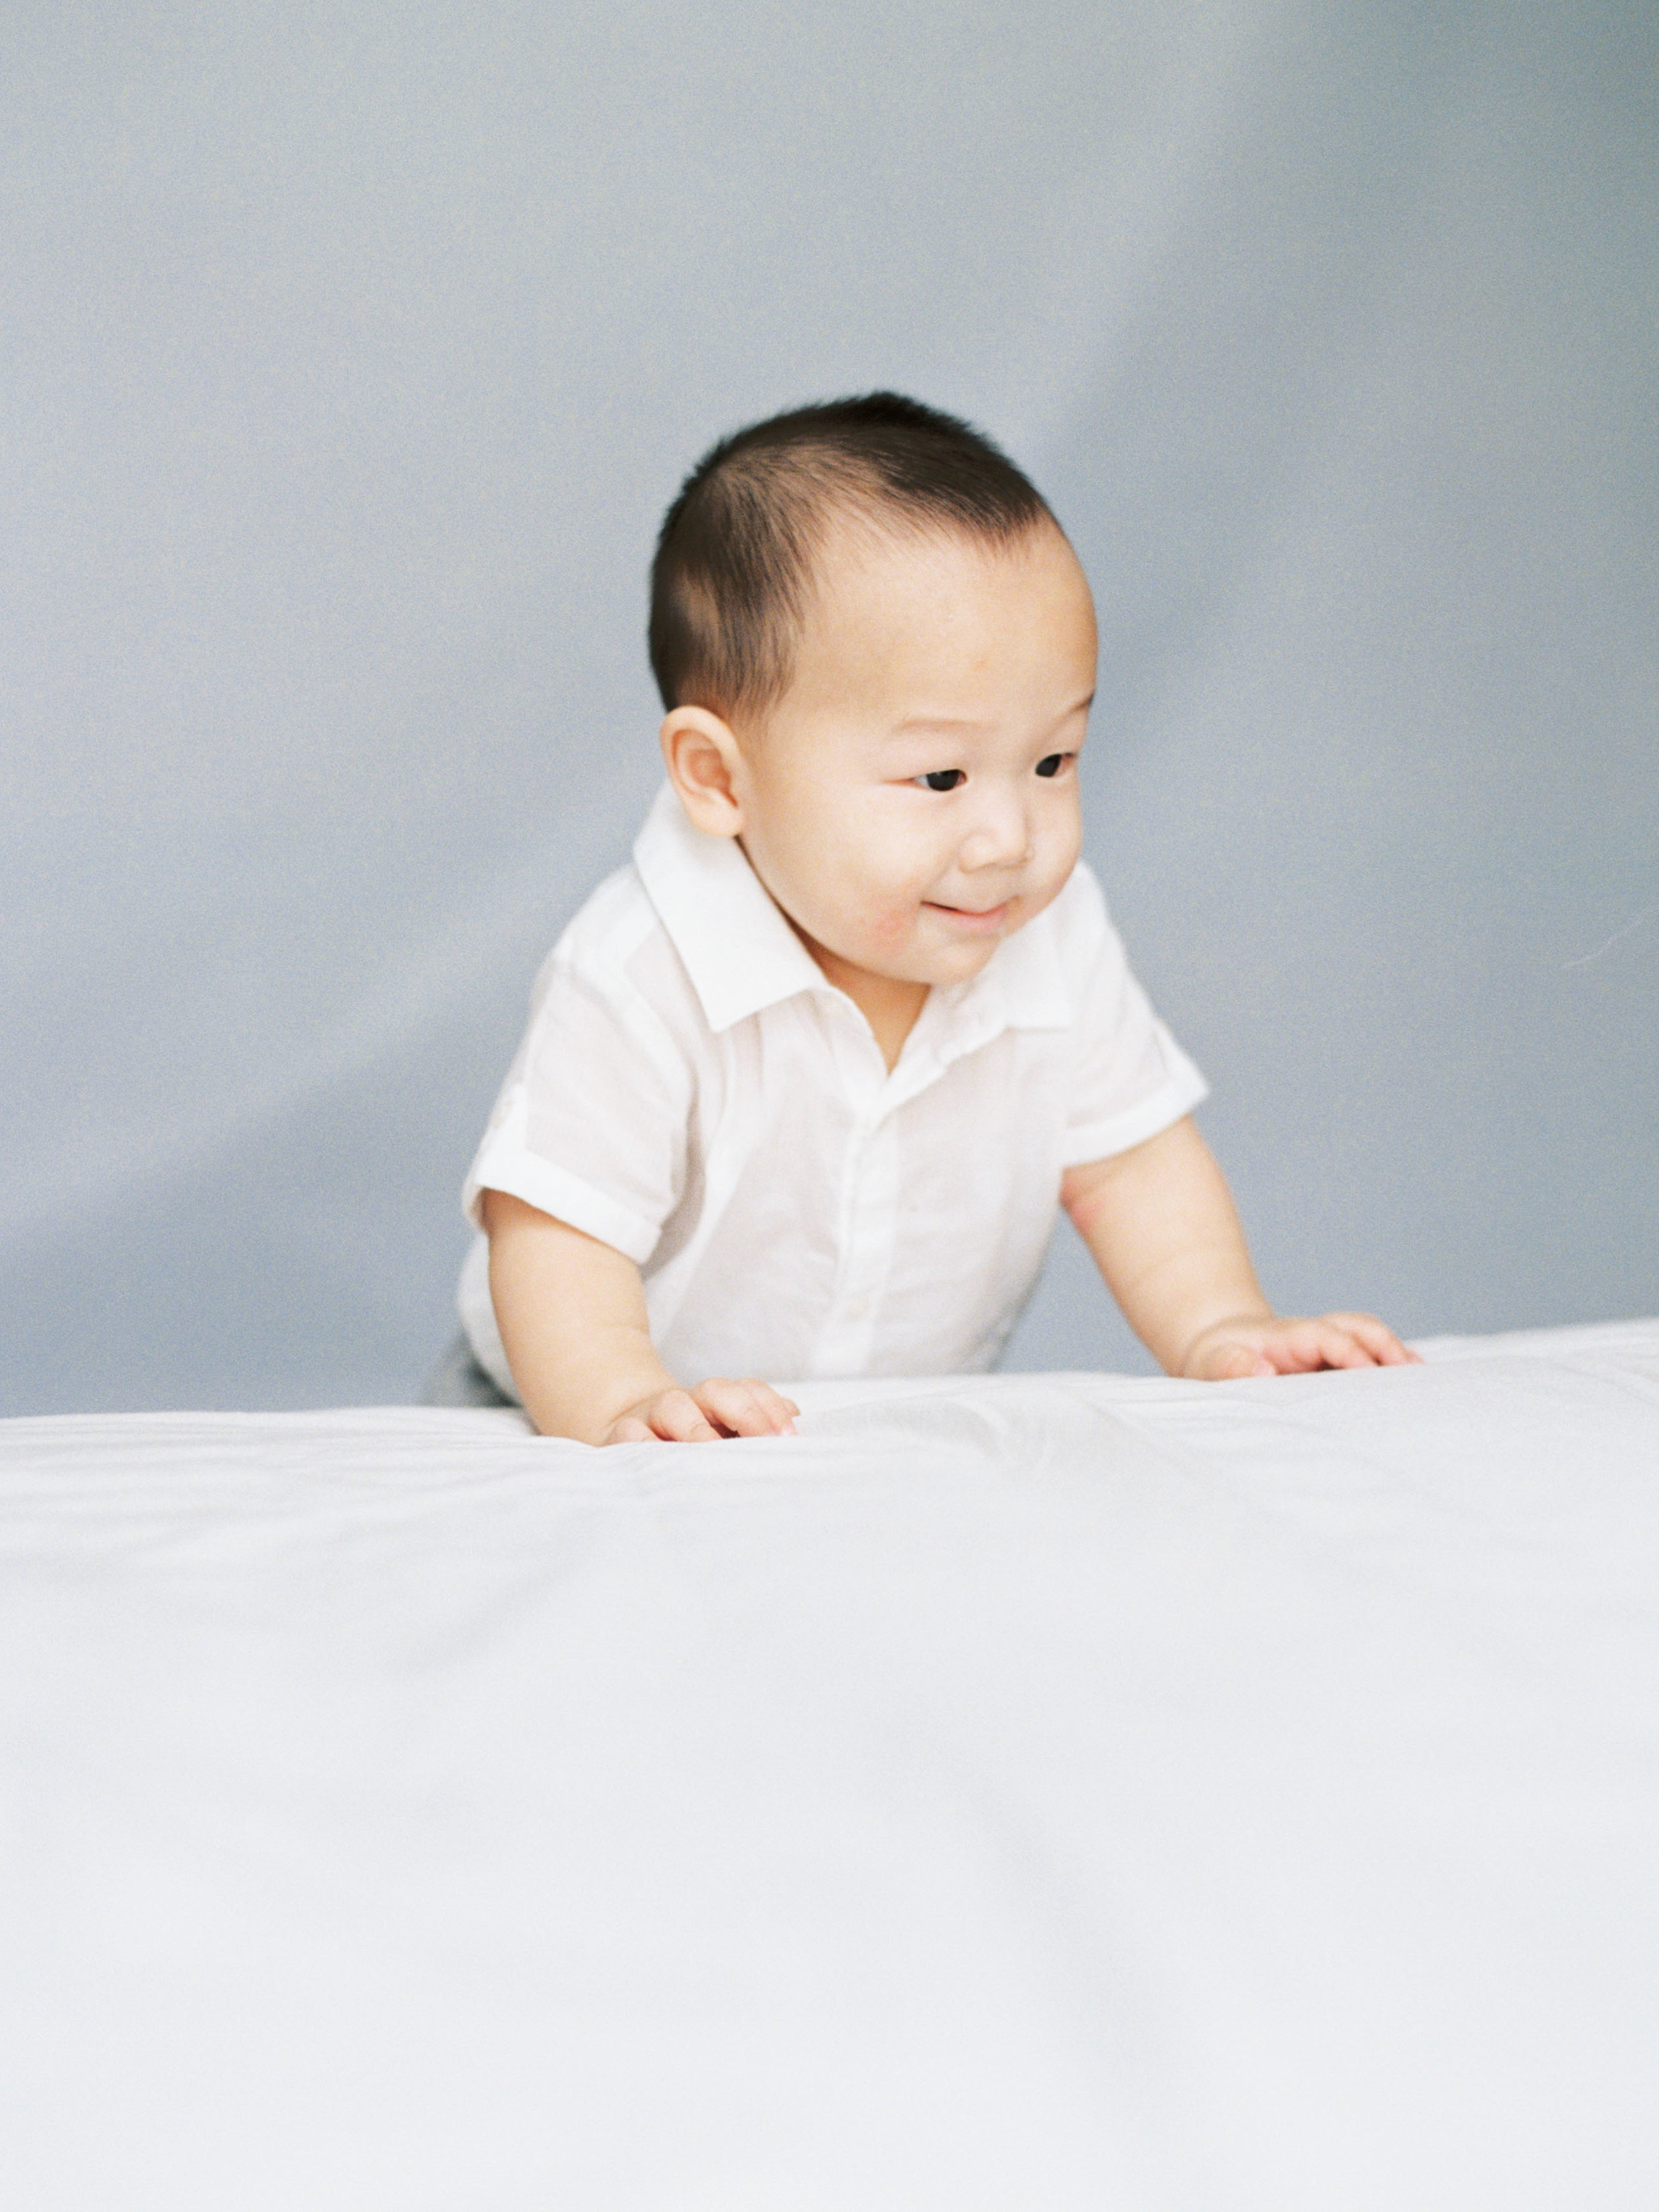 Cody-At Home-Simple-Baby Photography-8 Months Old-Studio June-Film Photography-Jakarta-52.jpg